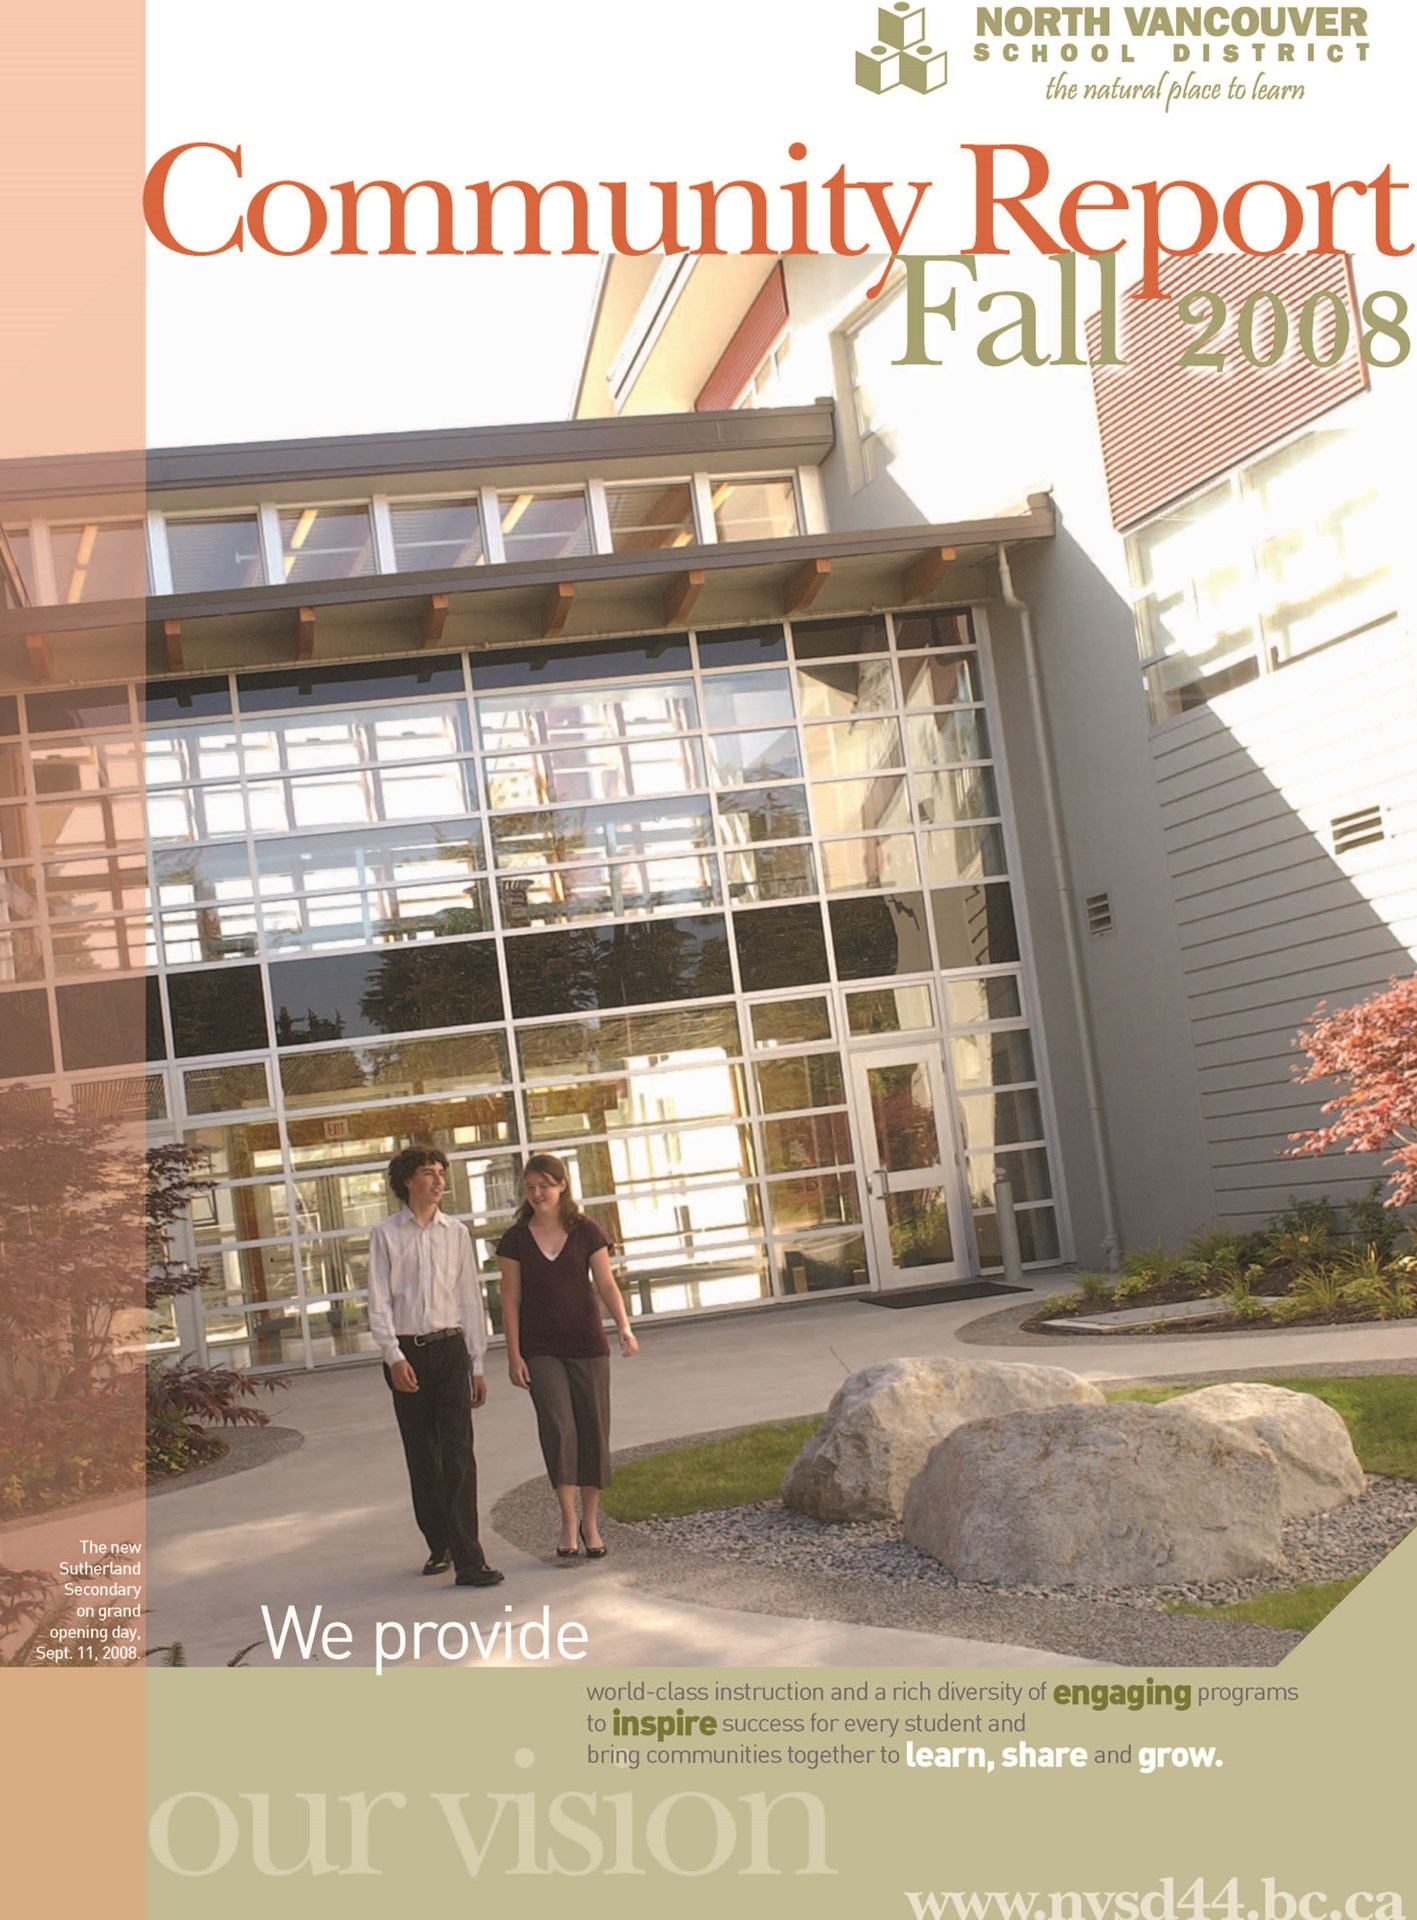 CommunityReport2008Fall.jpg